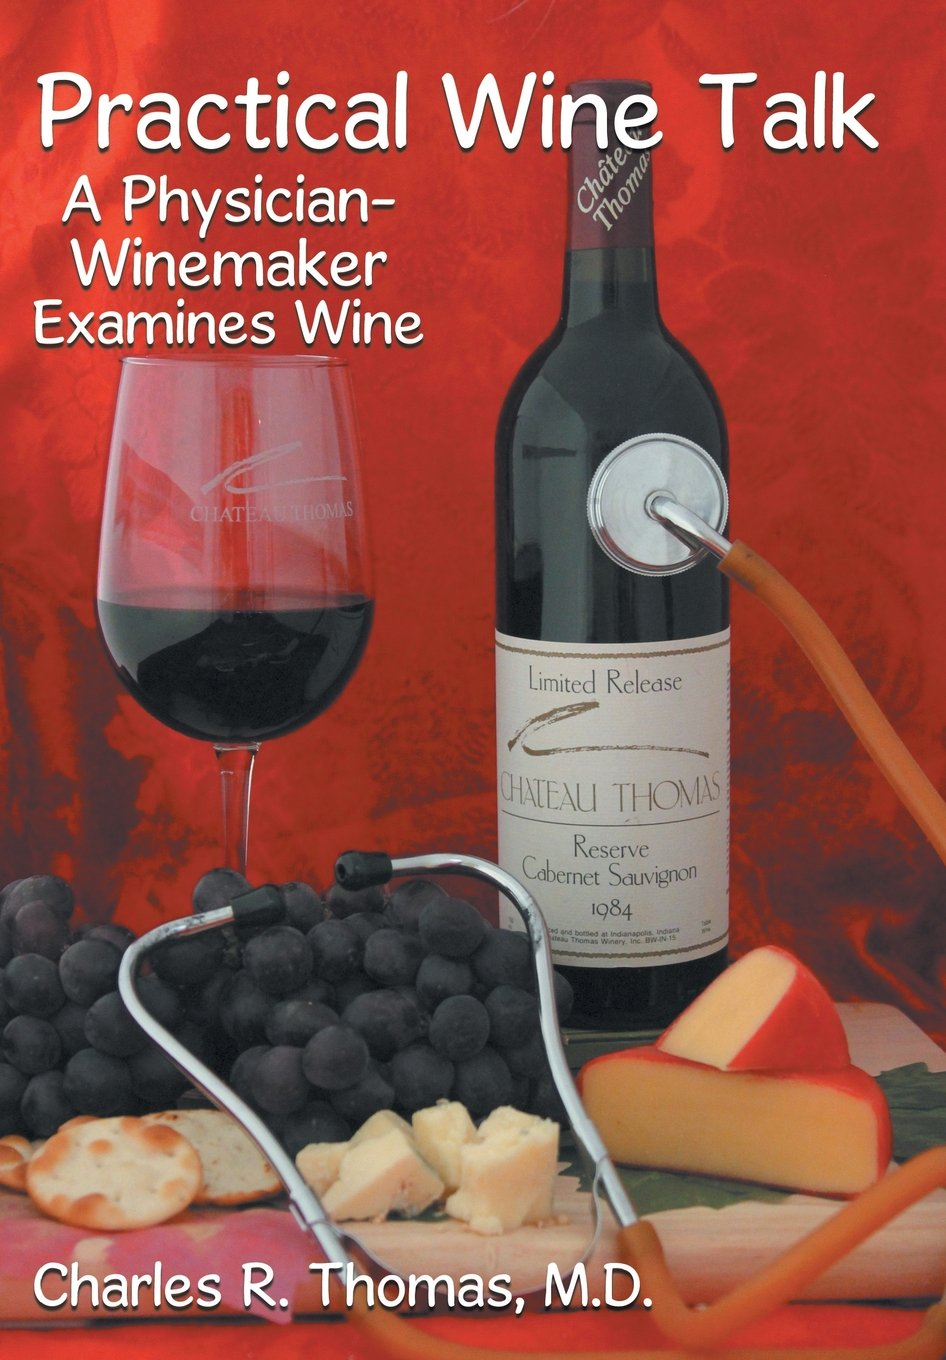 Practical Wine Talk: A Physician-Winemaker Examines Wine ebook